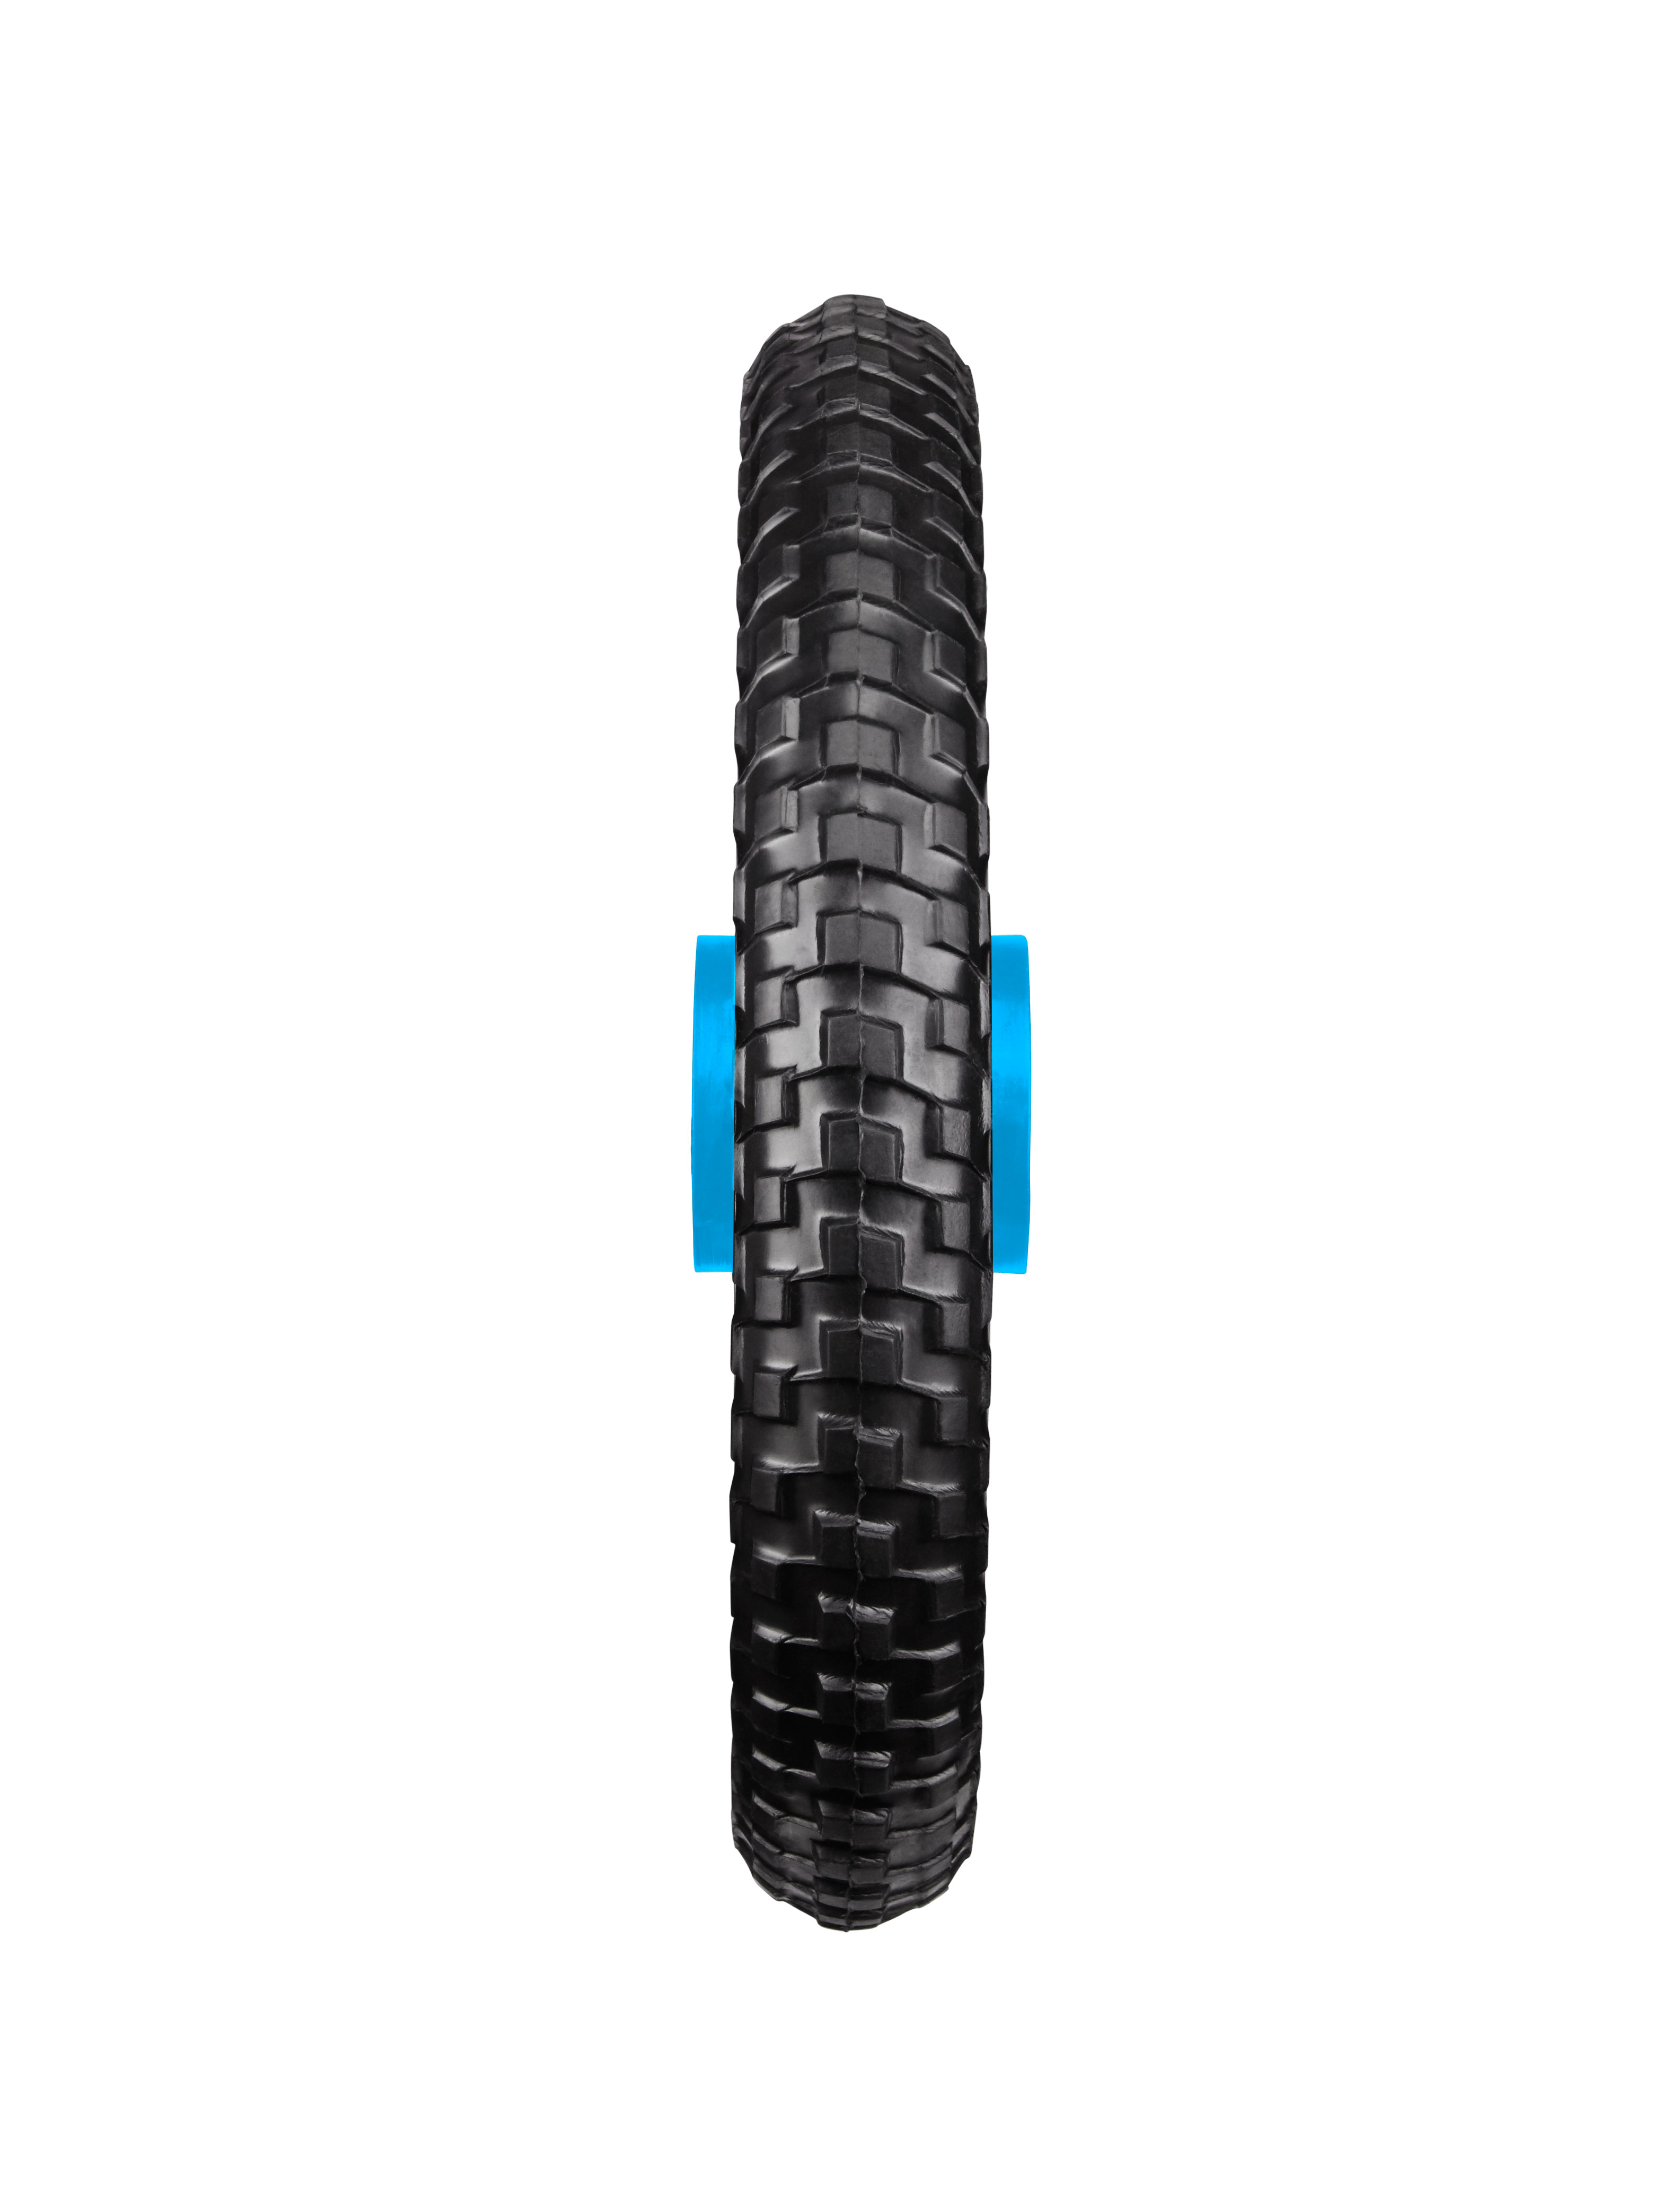 All-Terrain Tubeless Foam Wheel, Blue